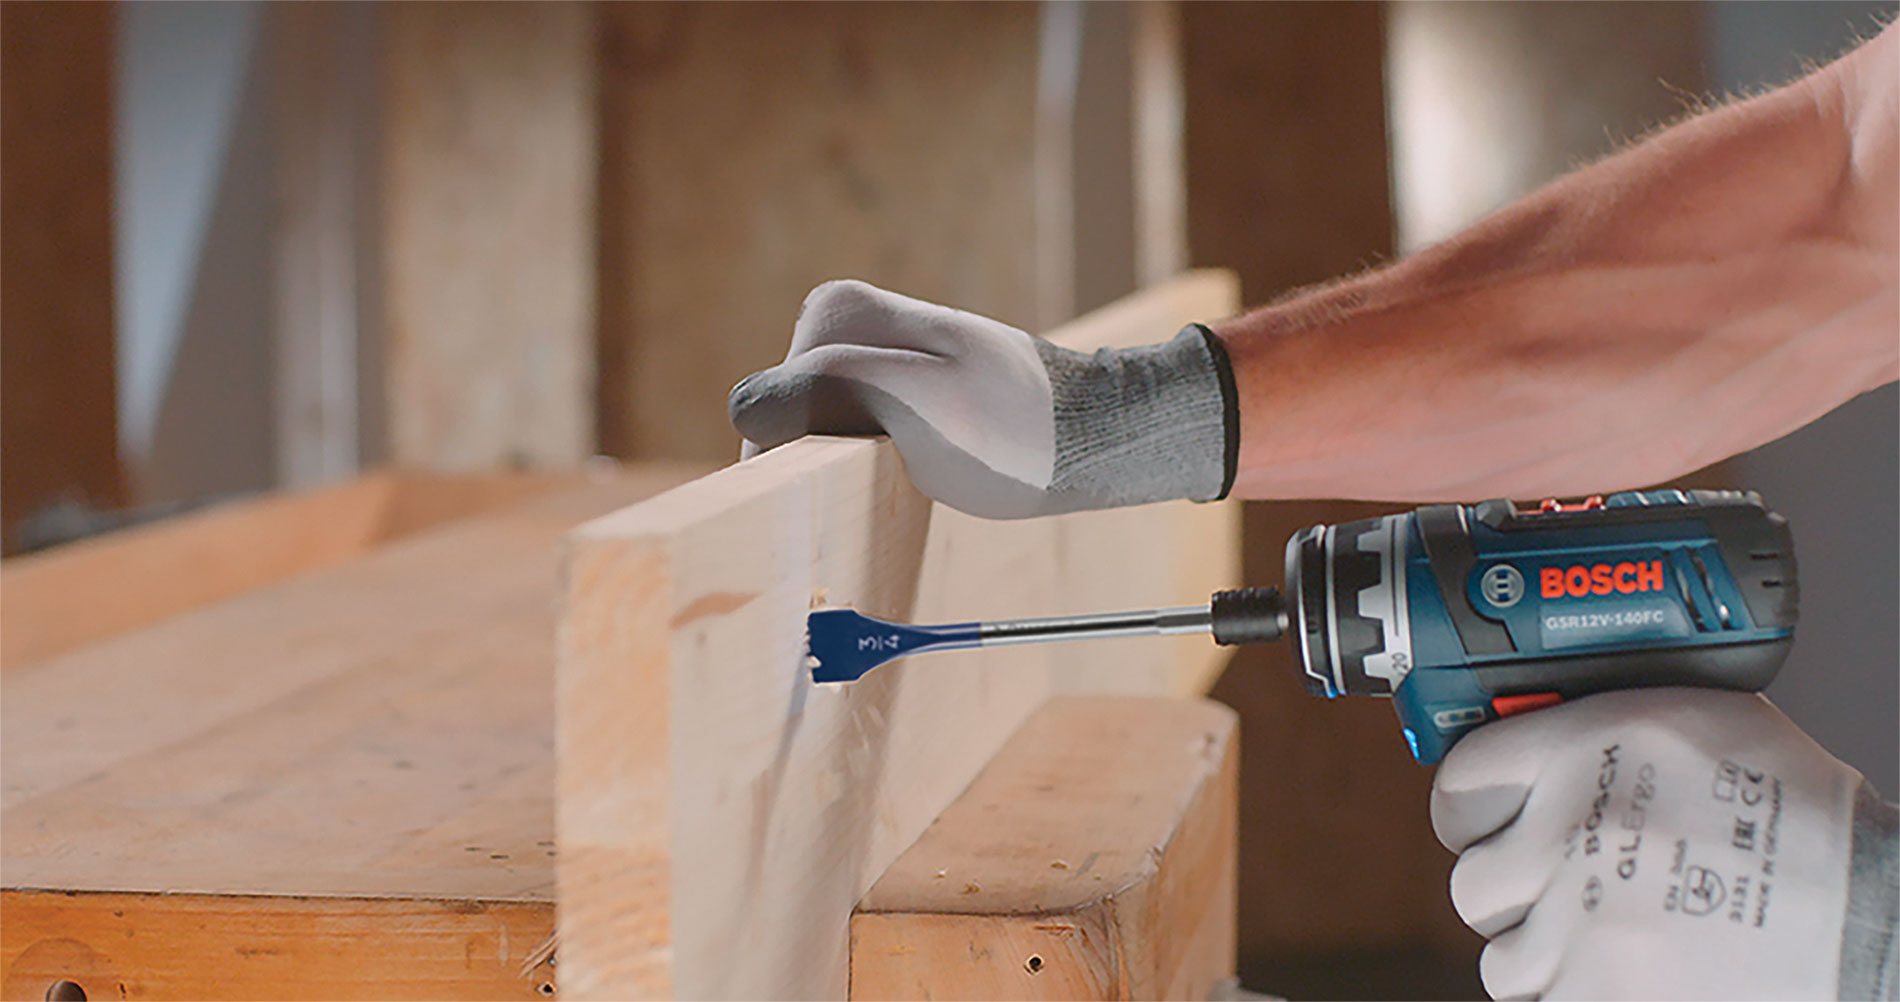 This Bosch 12V 5-in-1 drill driver is compact and lightweight and offers the performance of a larger tool. It enables users to work in tight spaces with less strain.